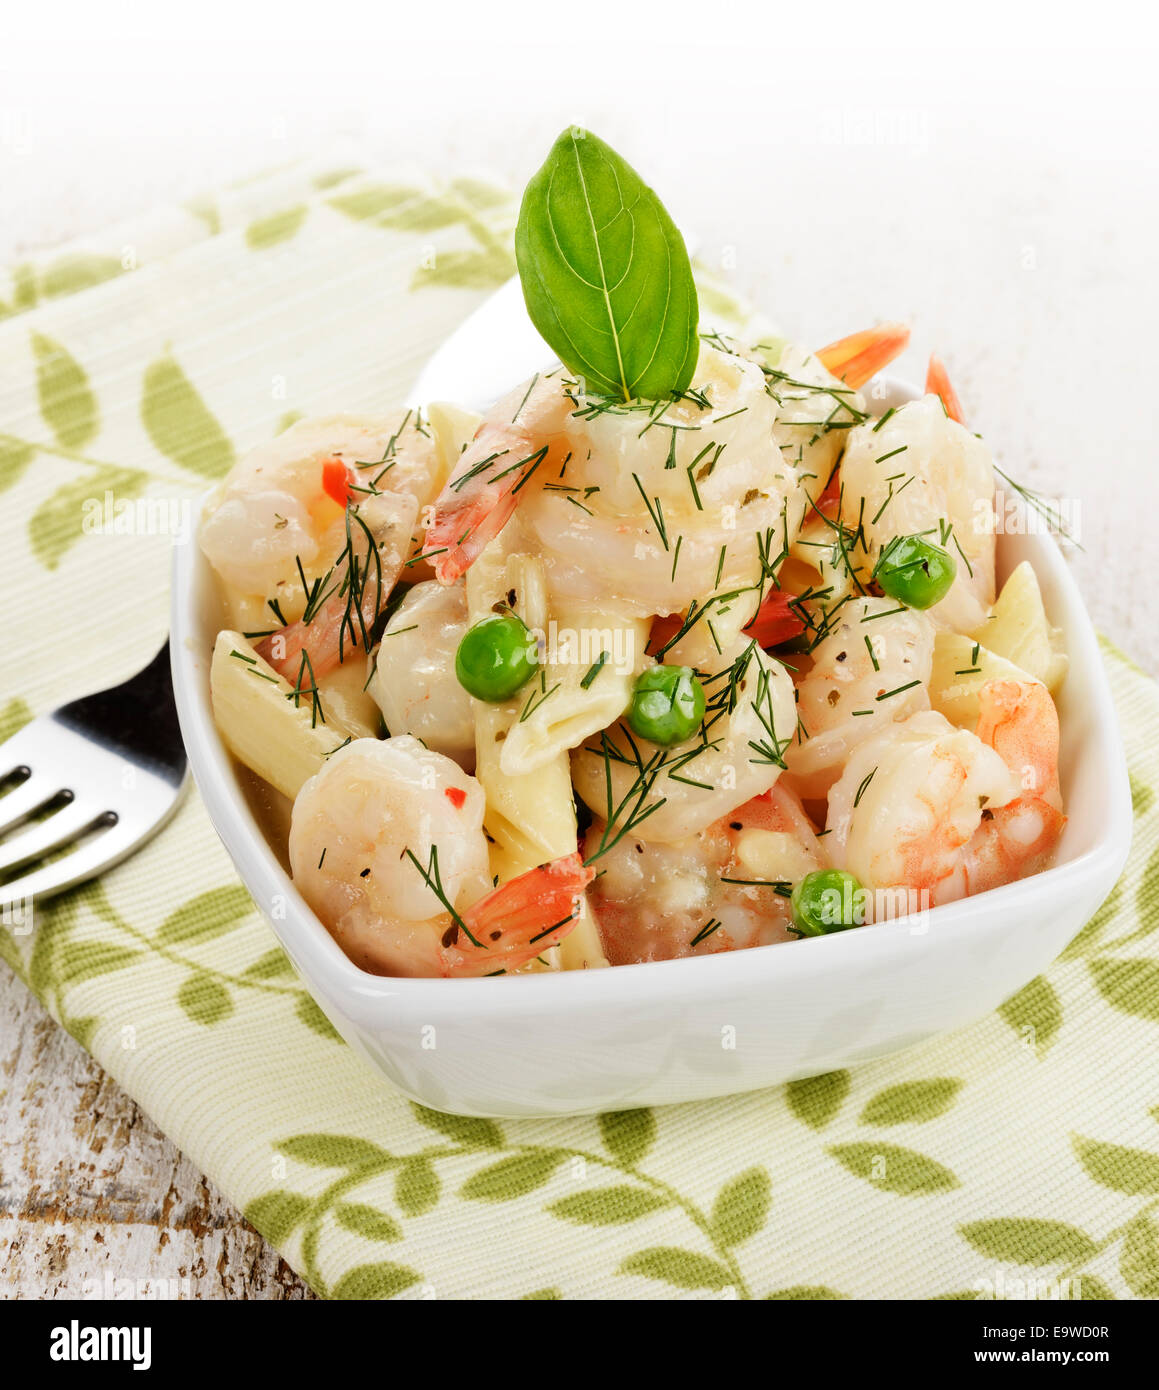 Bowl Of Shrimps And Pasta - Stock Image